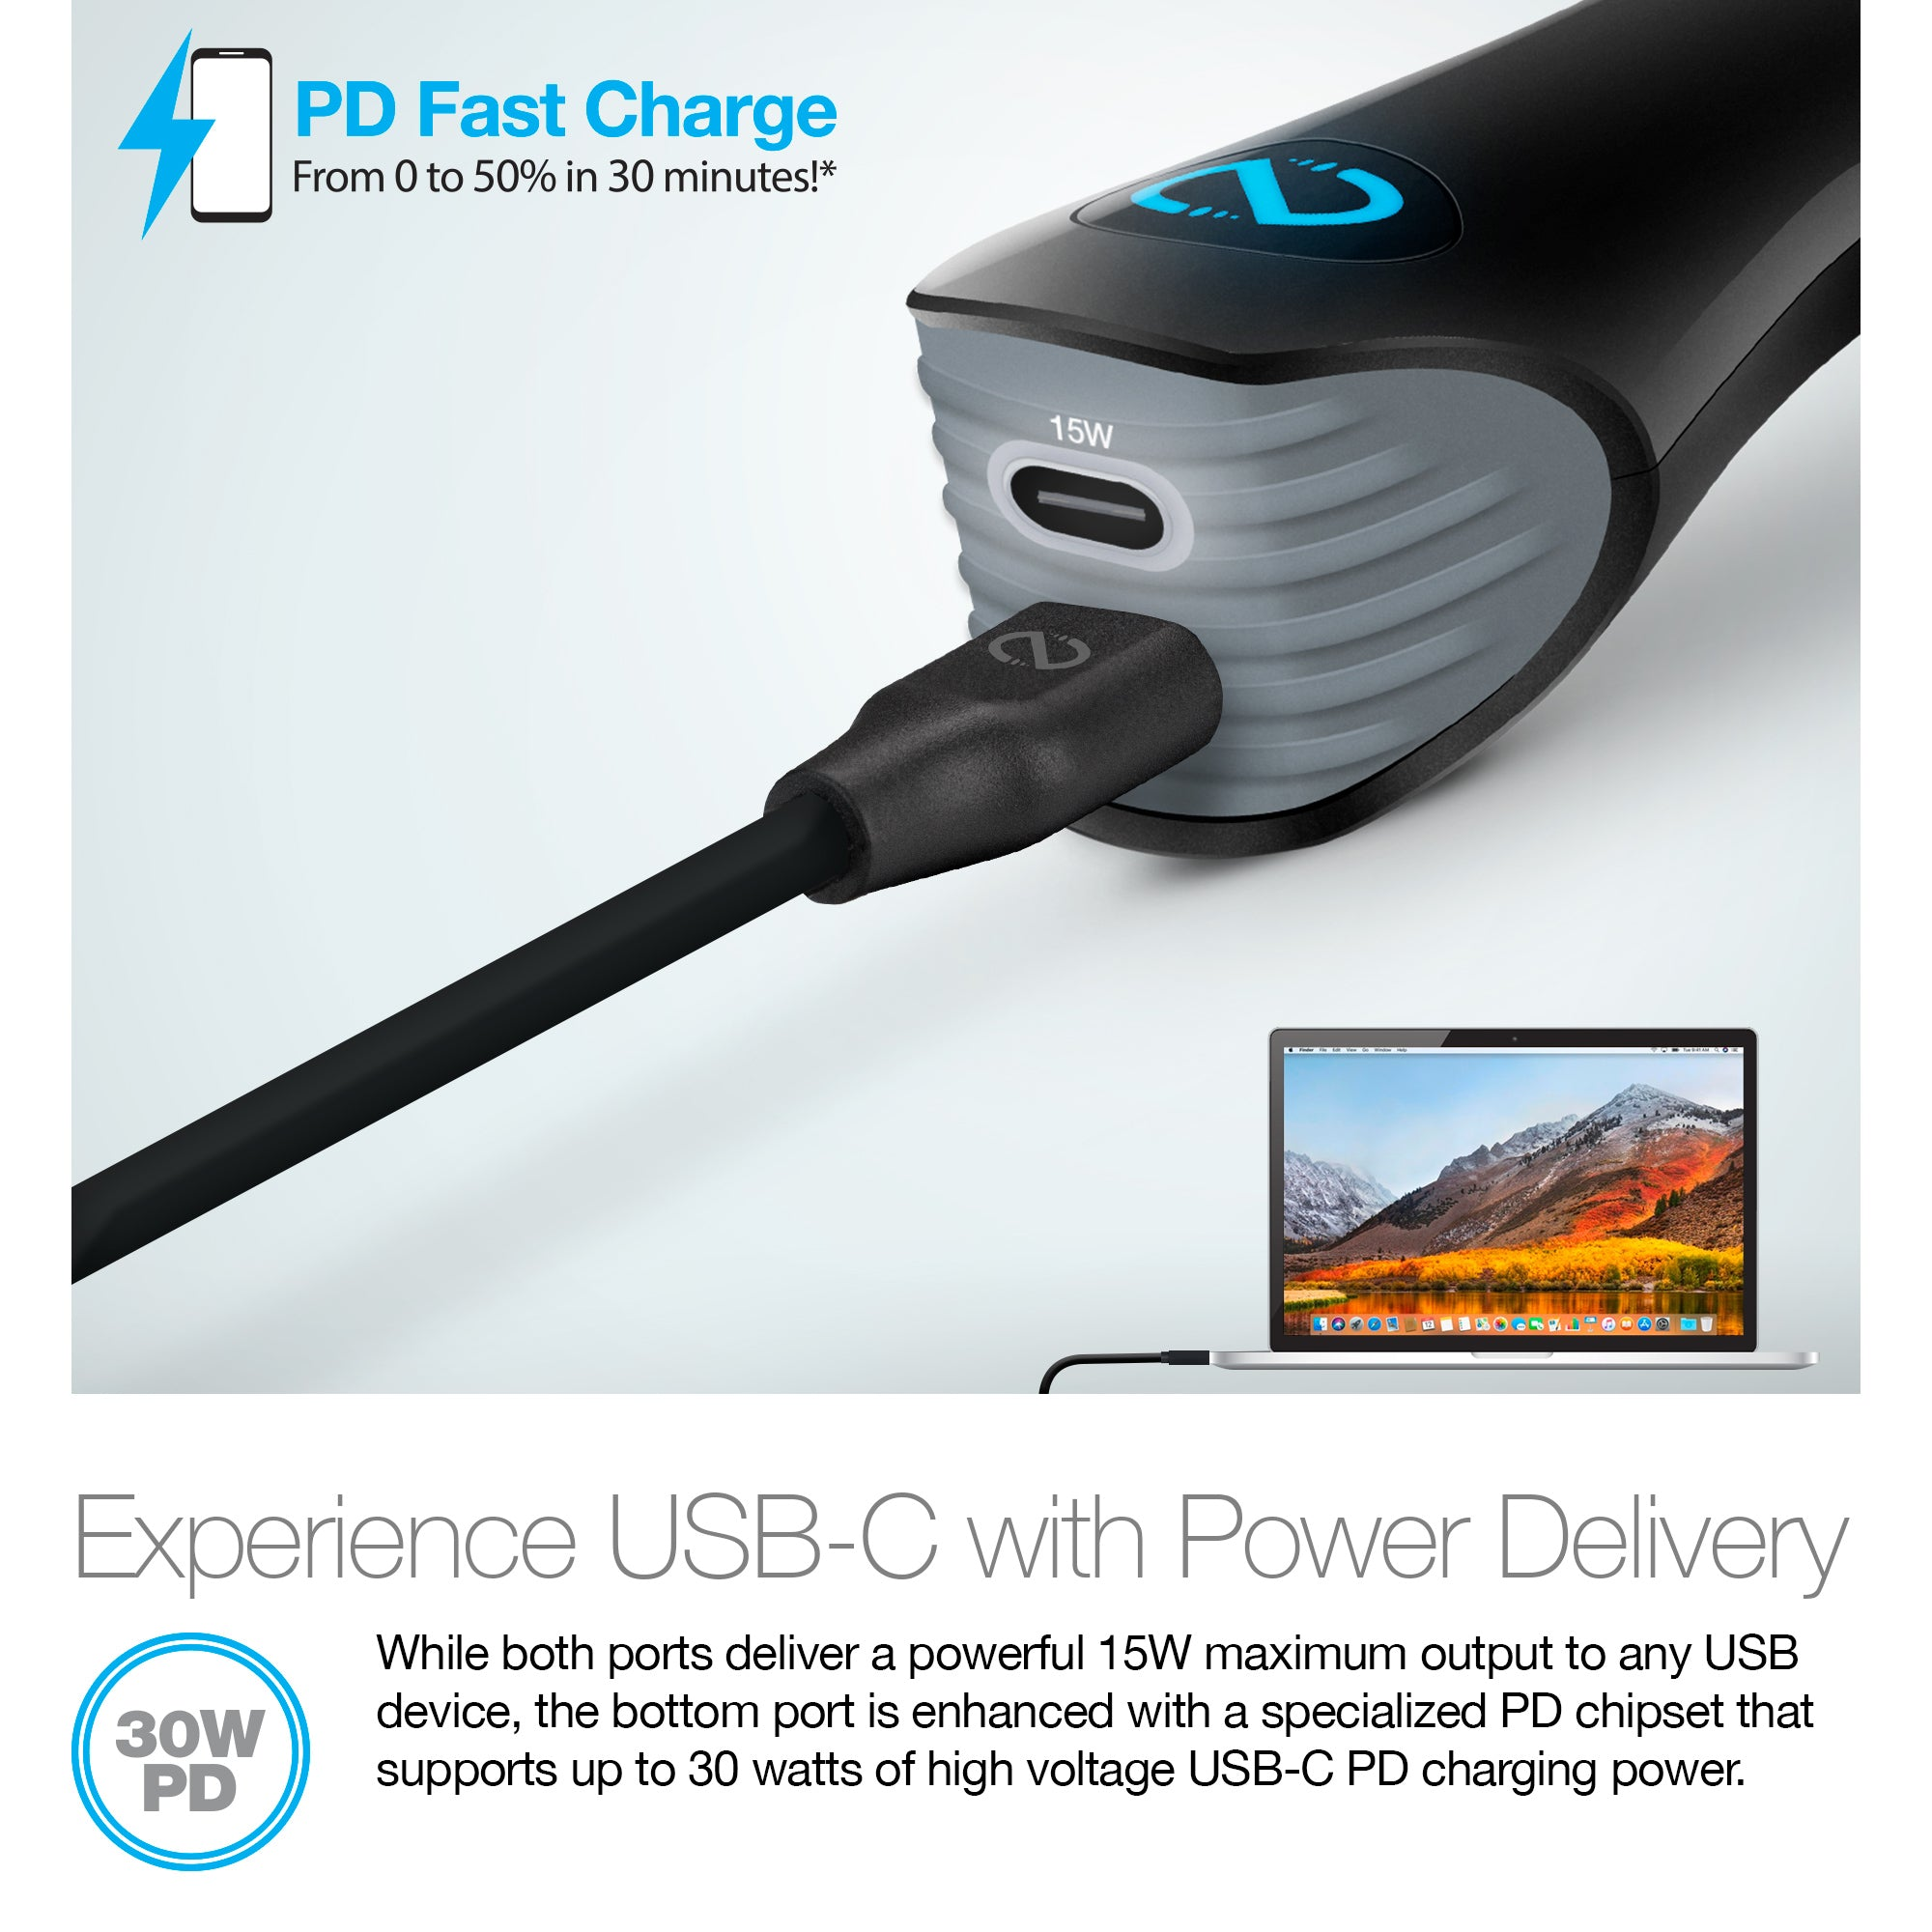 30W Turbo Power Delivery + USB-C Car Charger